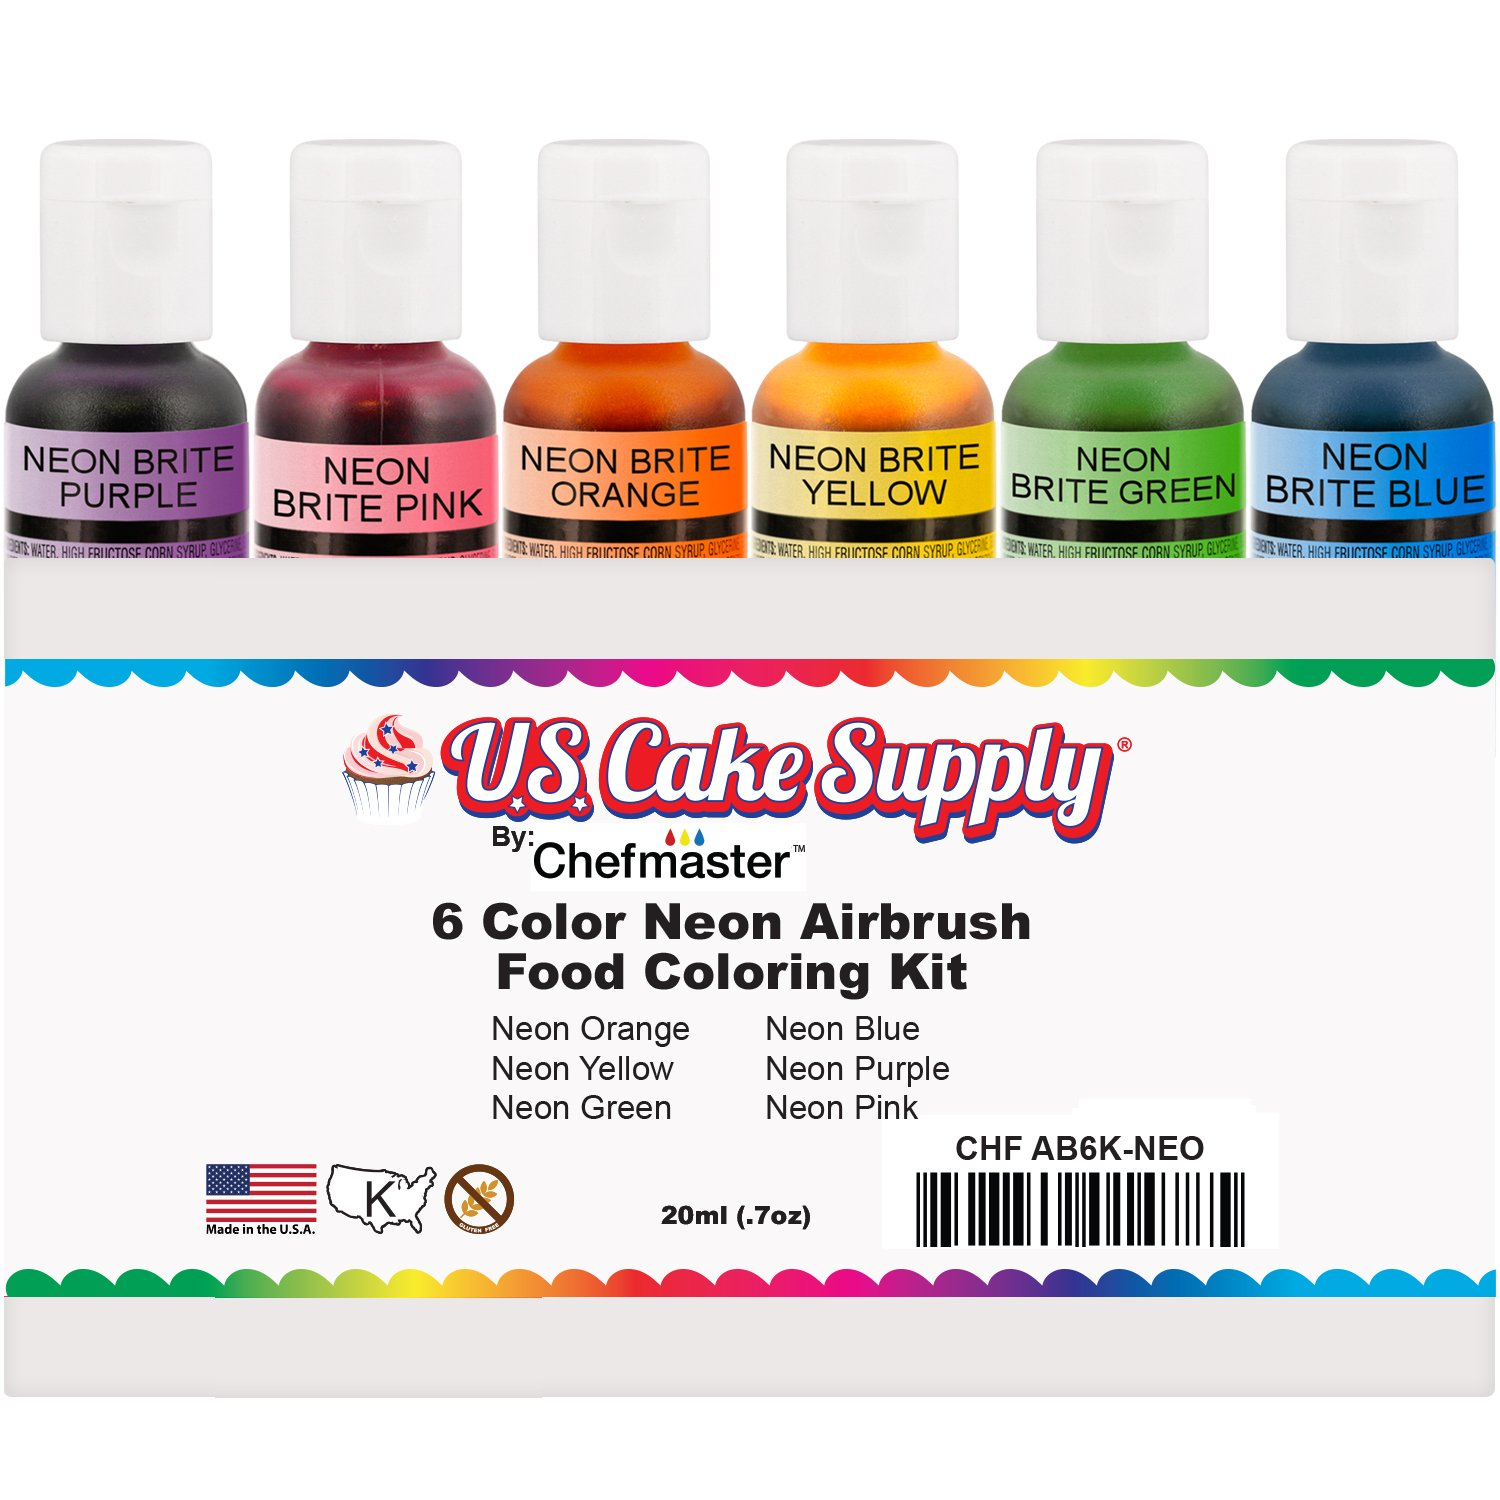 Amazon.com : US Cake Supply by Chefmaster Airbrush Cake Neon Color ...